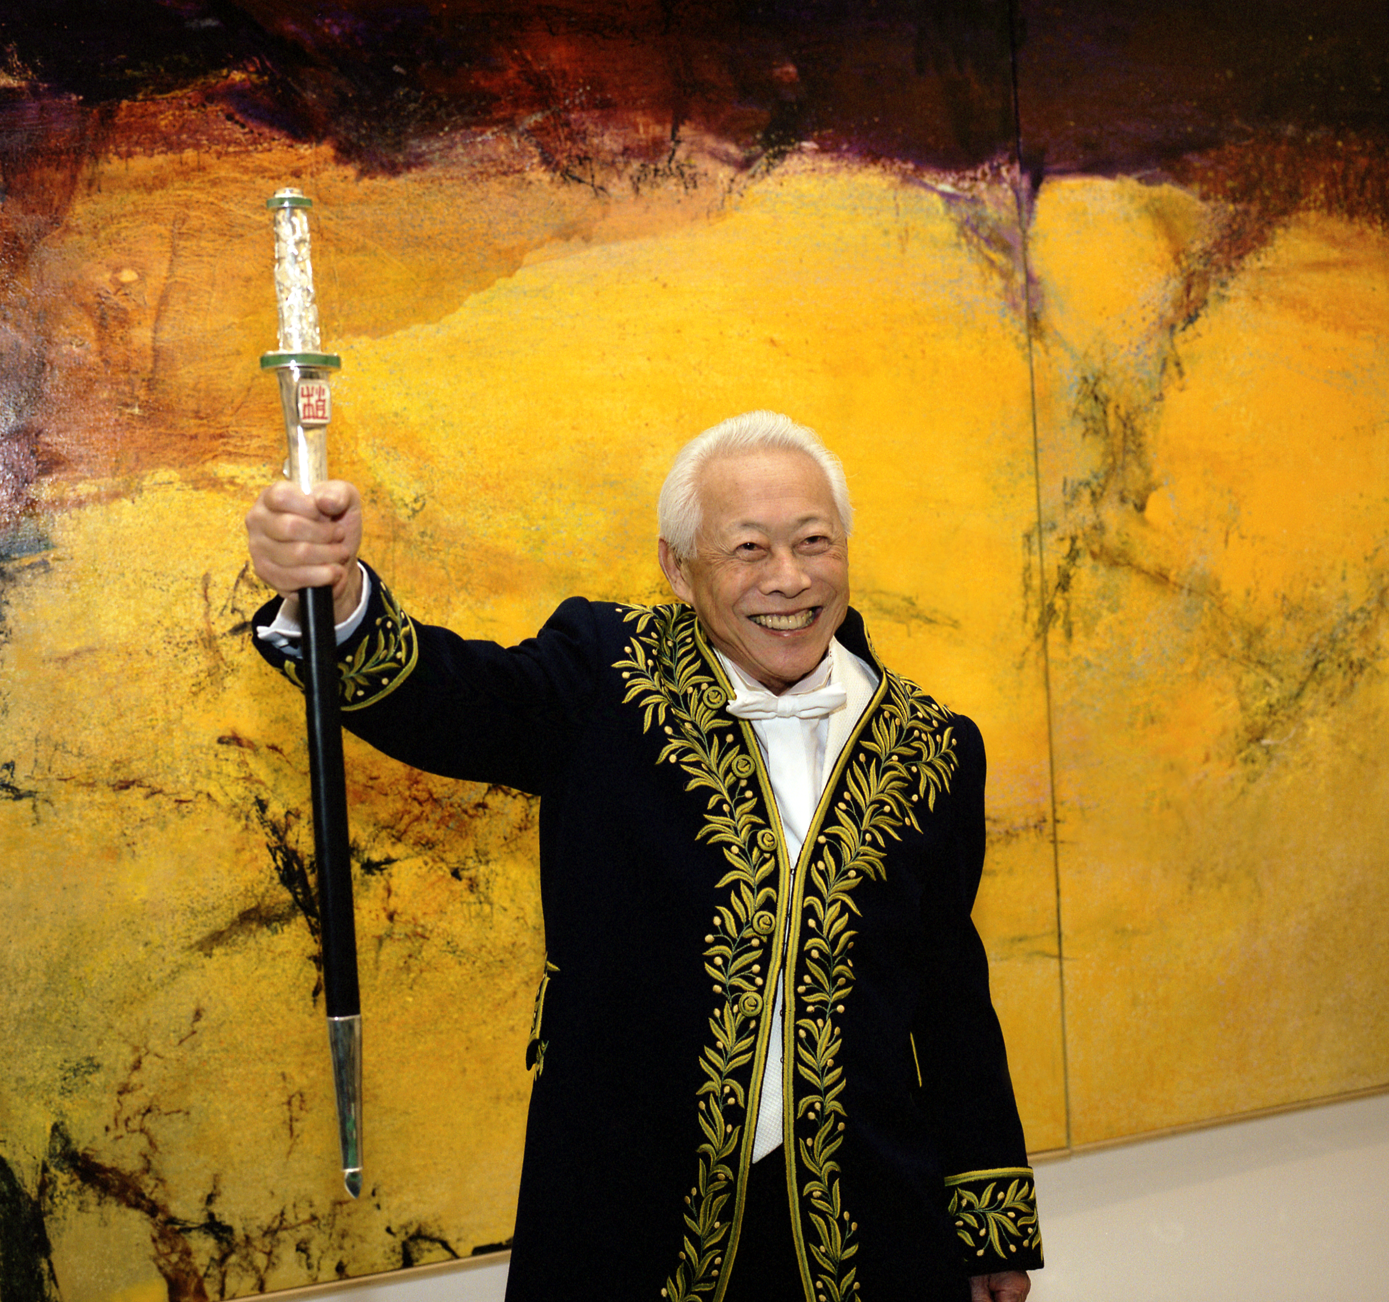 At the Galerie nationale du Jeu de Paume, in front of the triptych ' Mai-Septembre  1989' for the presentation of his sword of academician on November 26th 2003. Photo: Dennis Bouchard